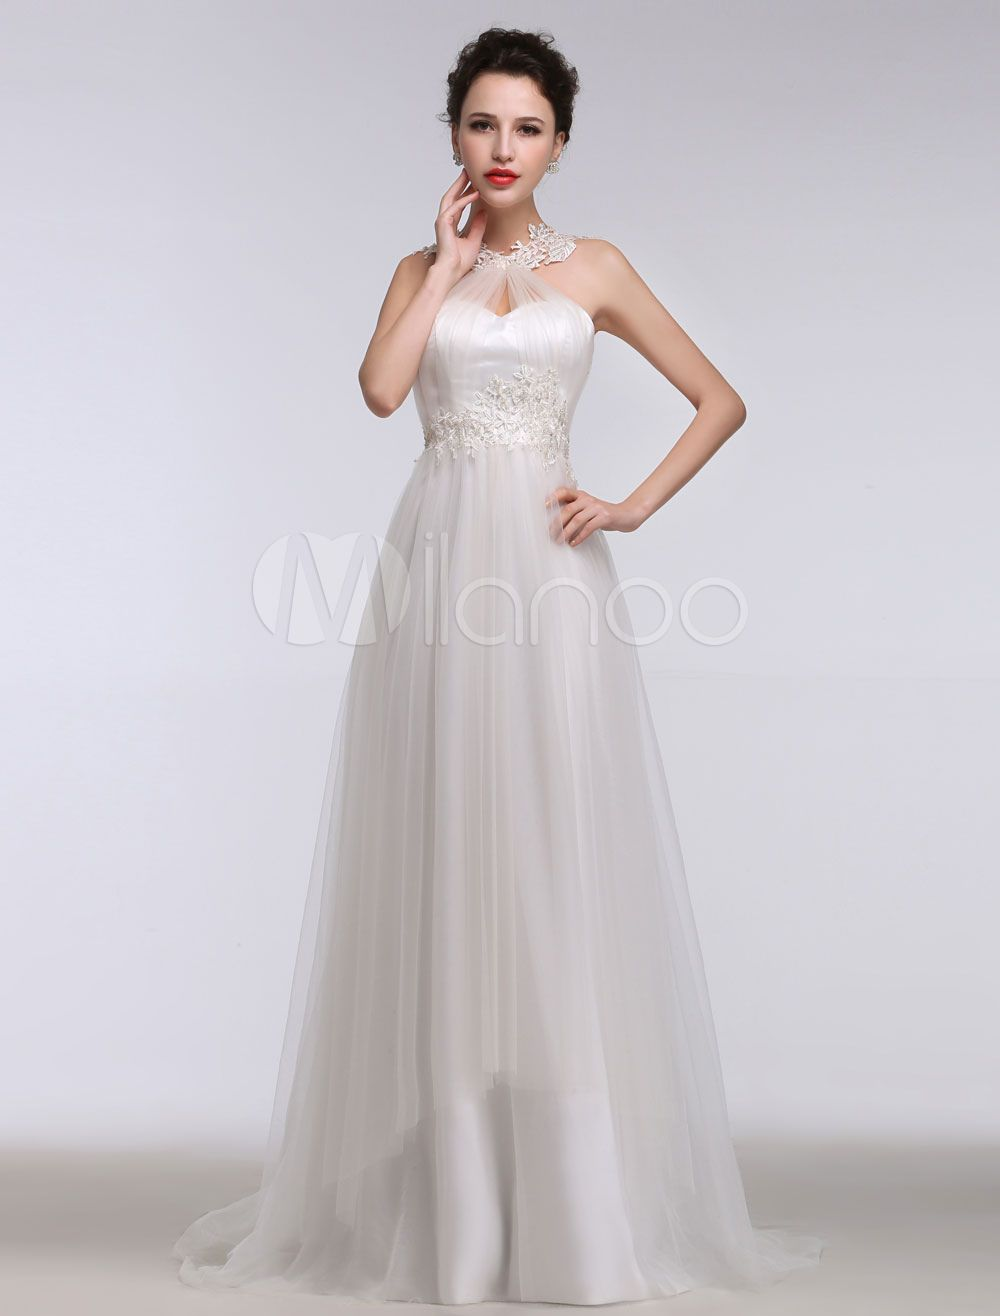 Lace wedding dress halter  Lace Wedding Dress Halter Sweetheart A Line Beading Tulle Bridal